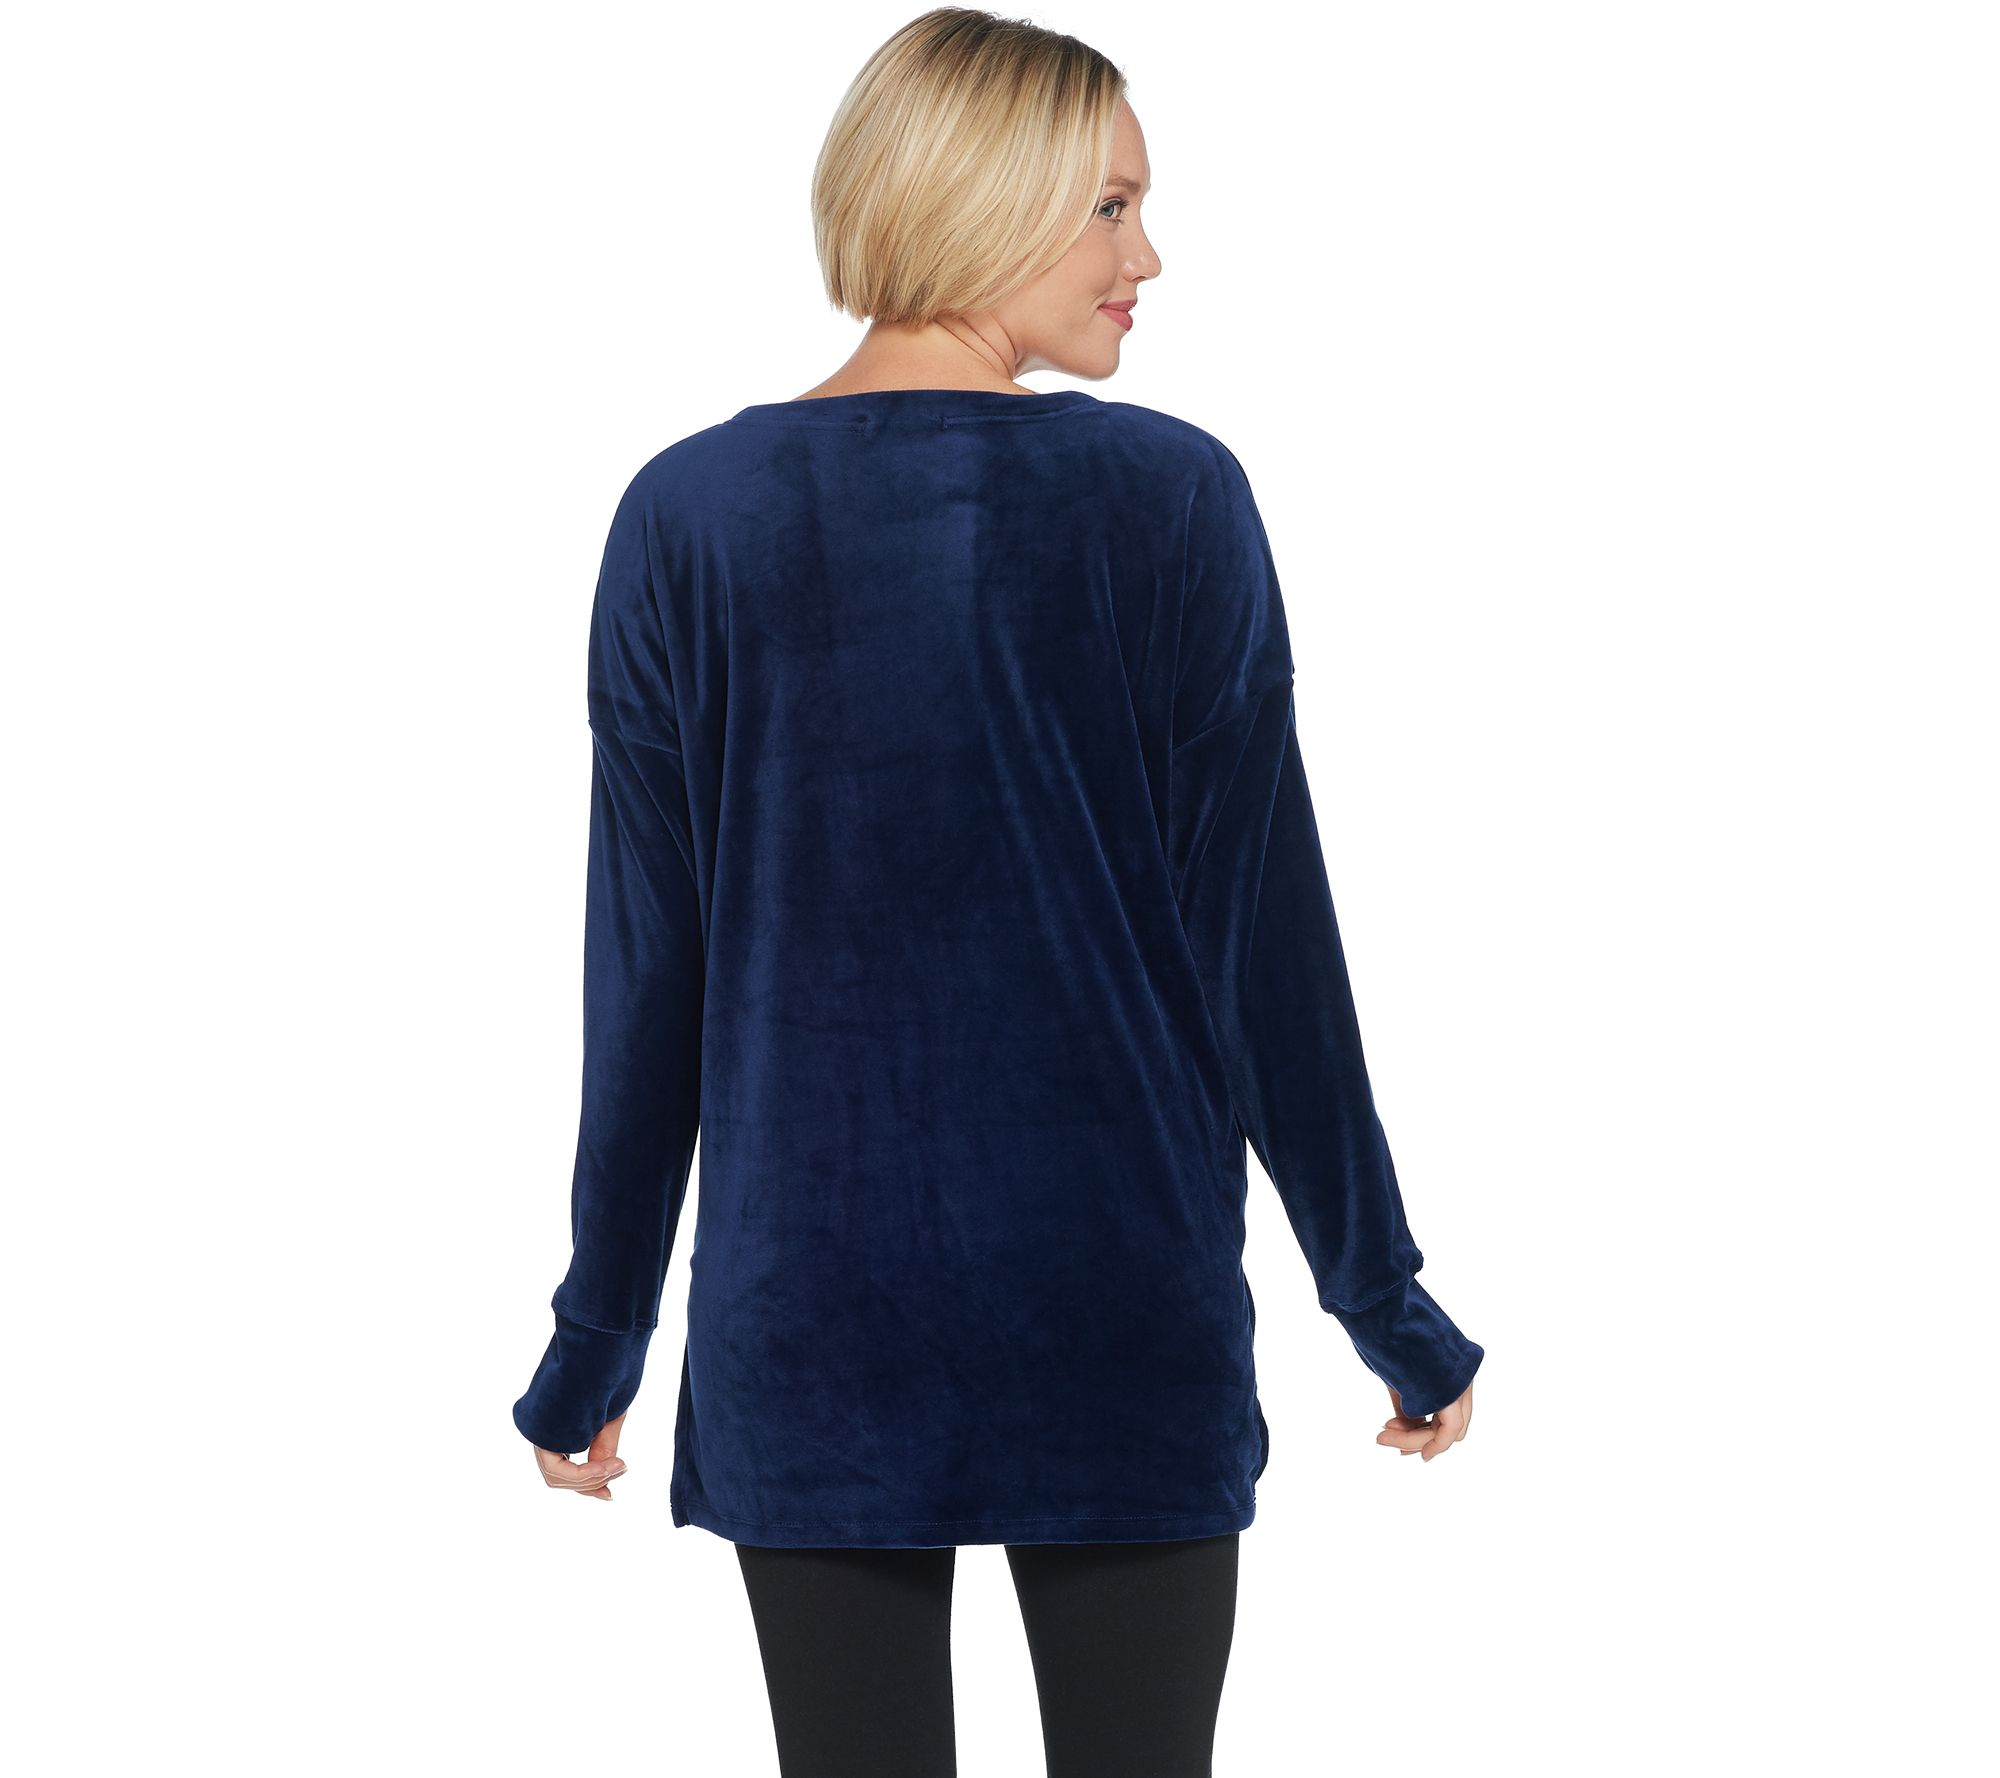 ca2ace07cc0f72 Cuddl Duds Double Plush Velour V-Neck Long Sleeve Top - Page 1 — QVC.com